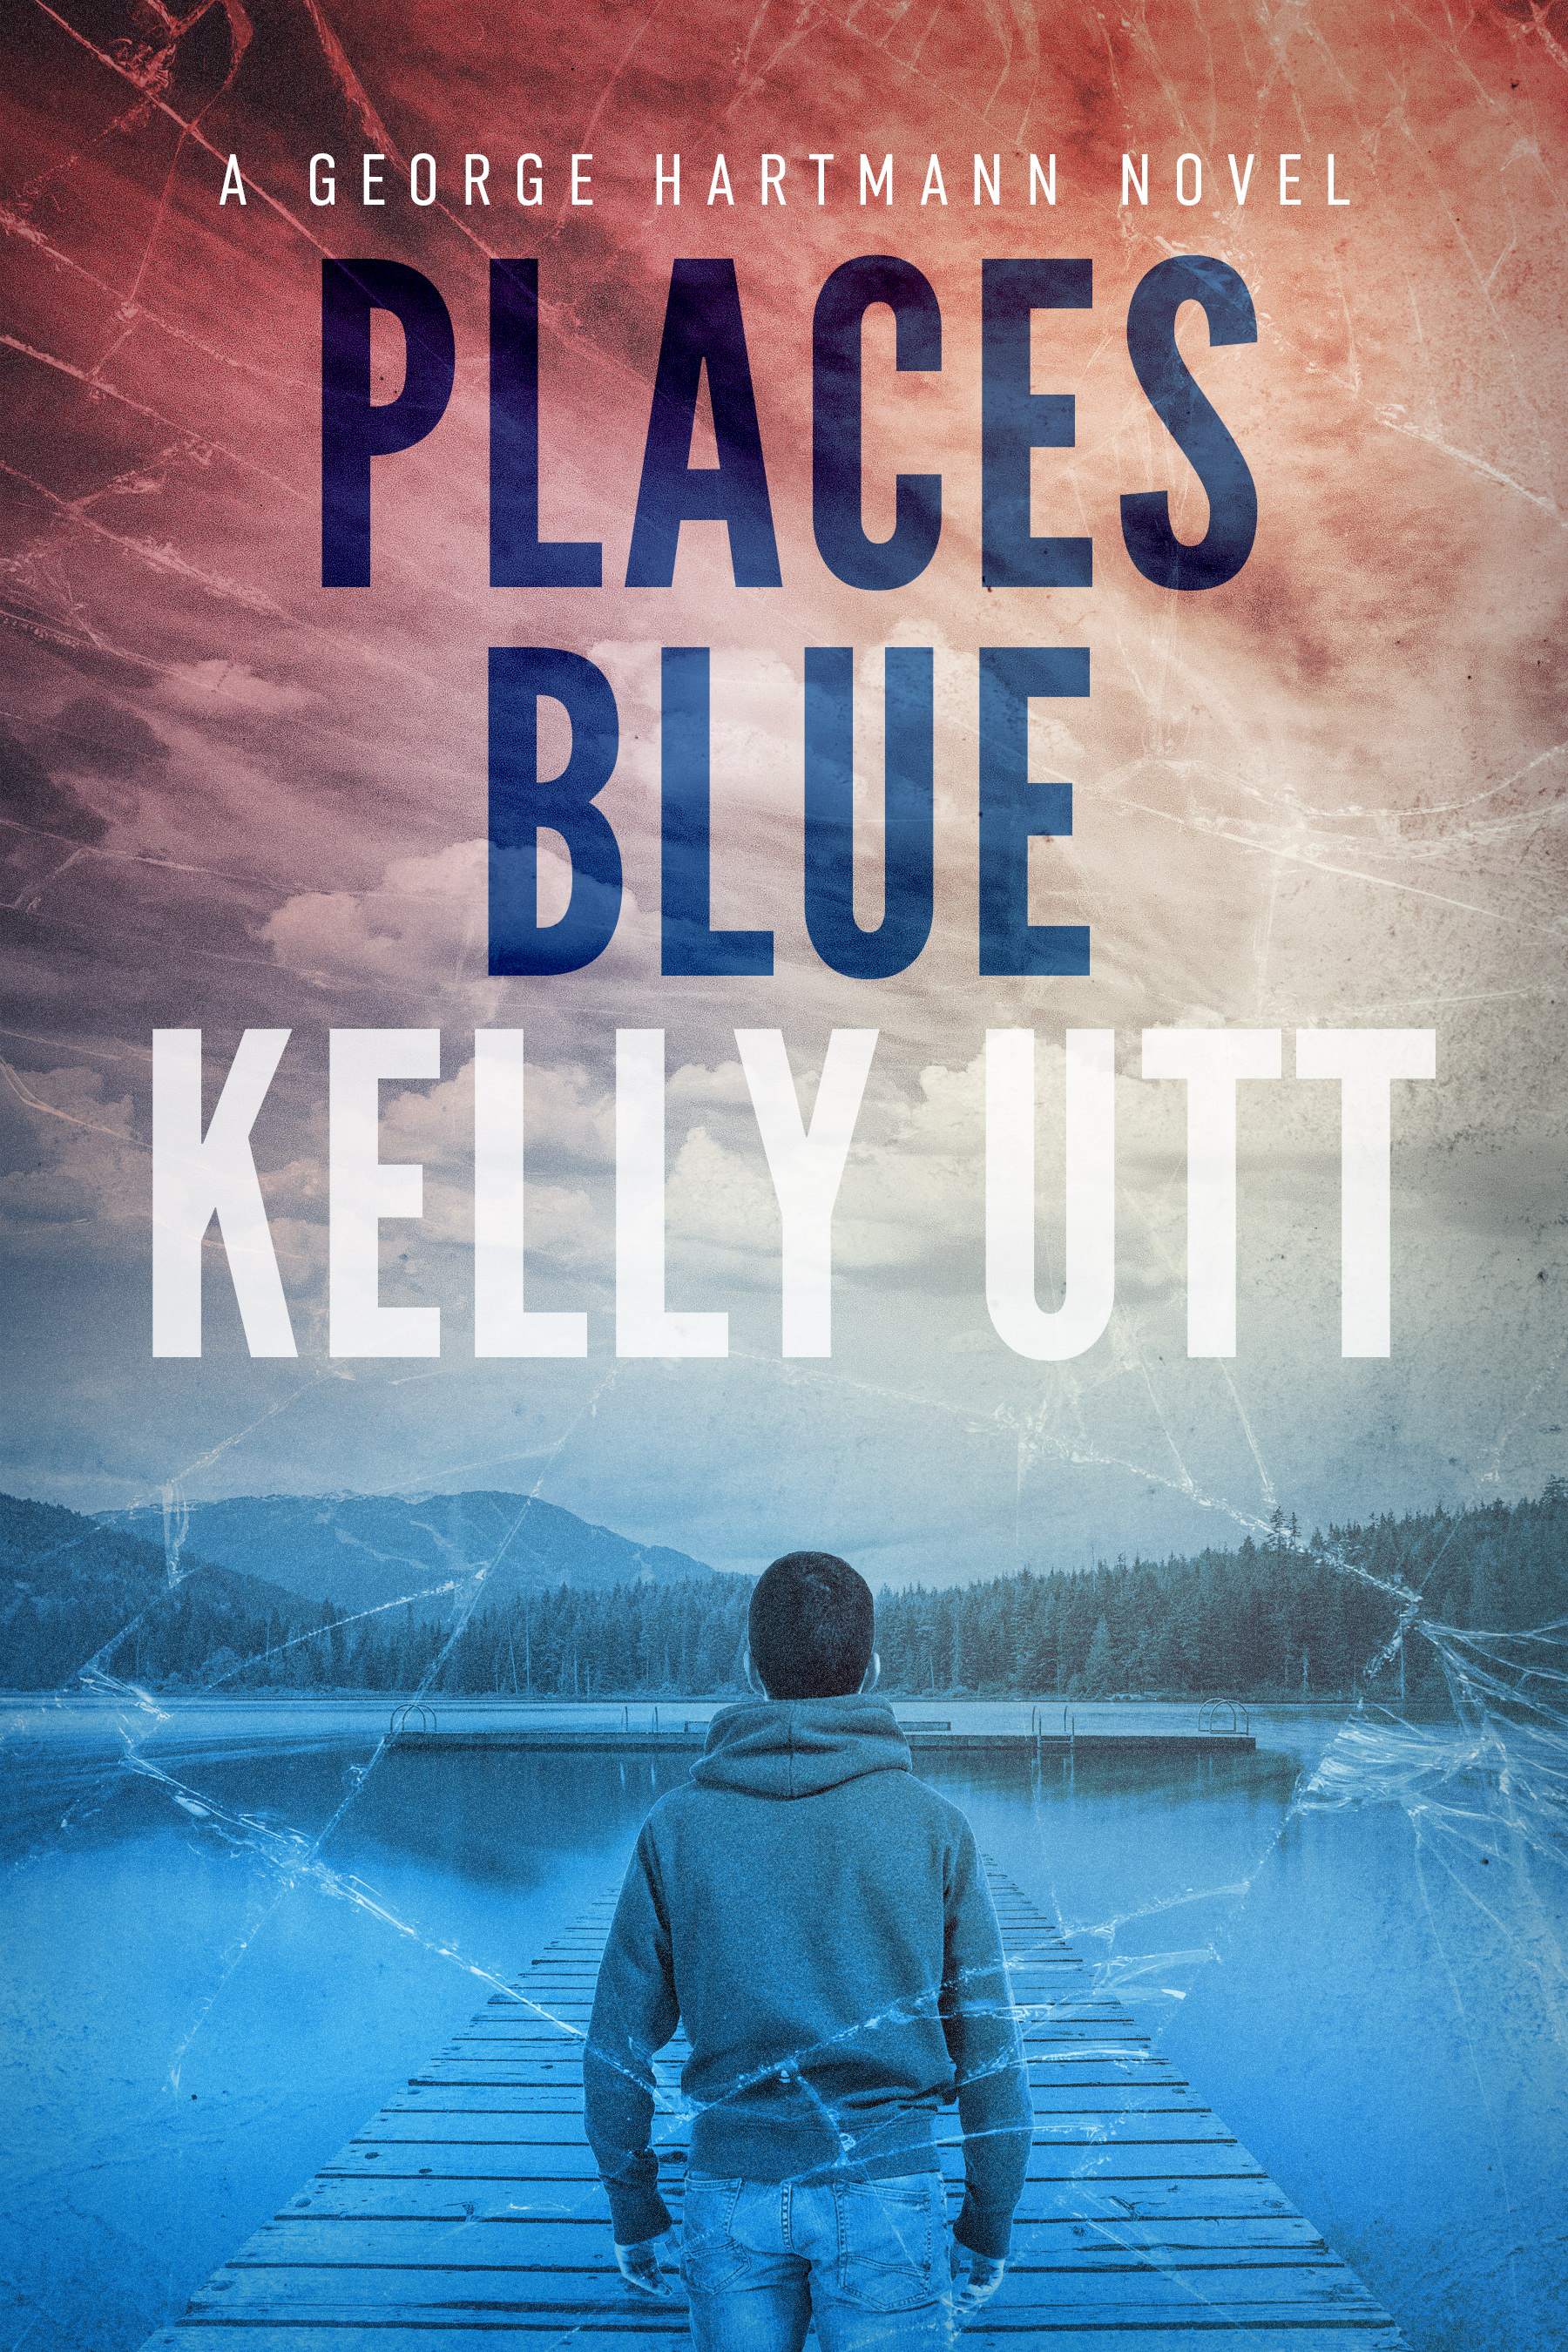 Copy of Places Blue - George Hartmann Book 3)